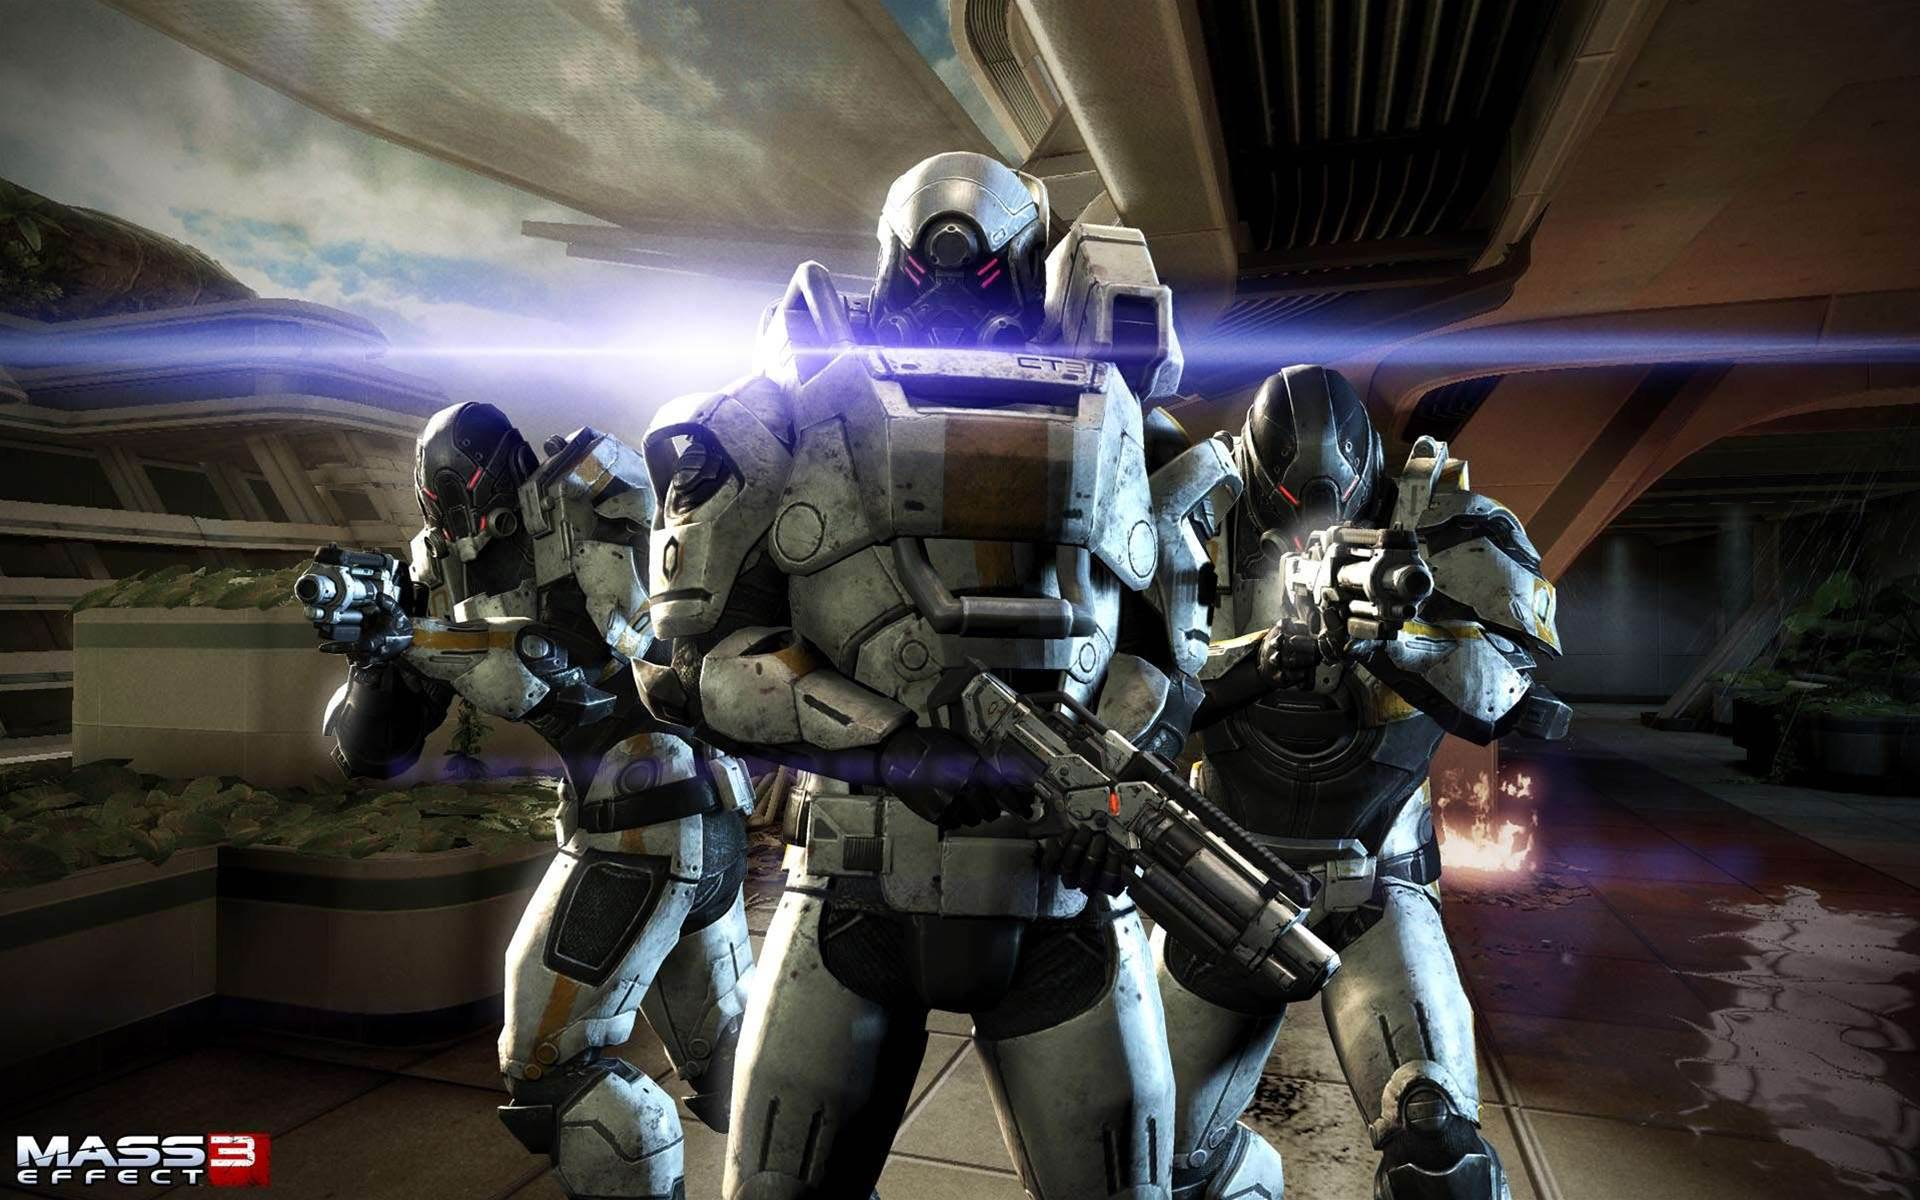 Mass Effect 3 demo coming soon - and to PC!